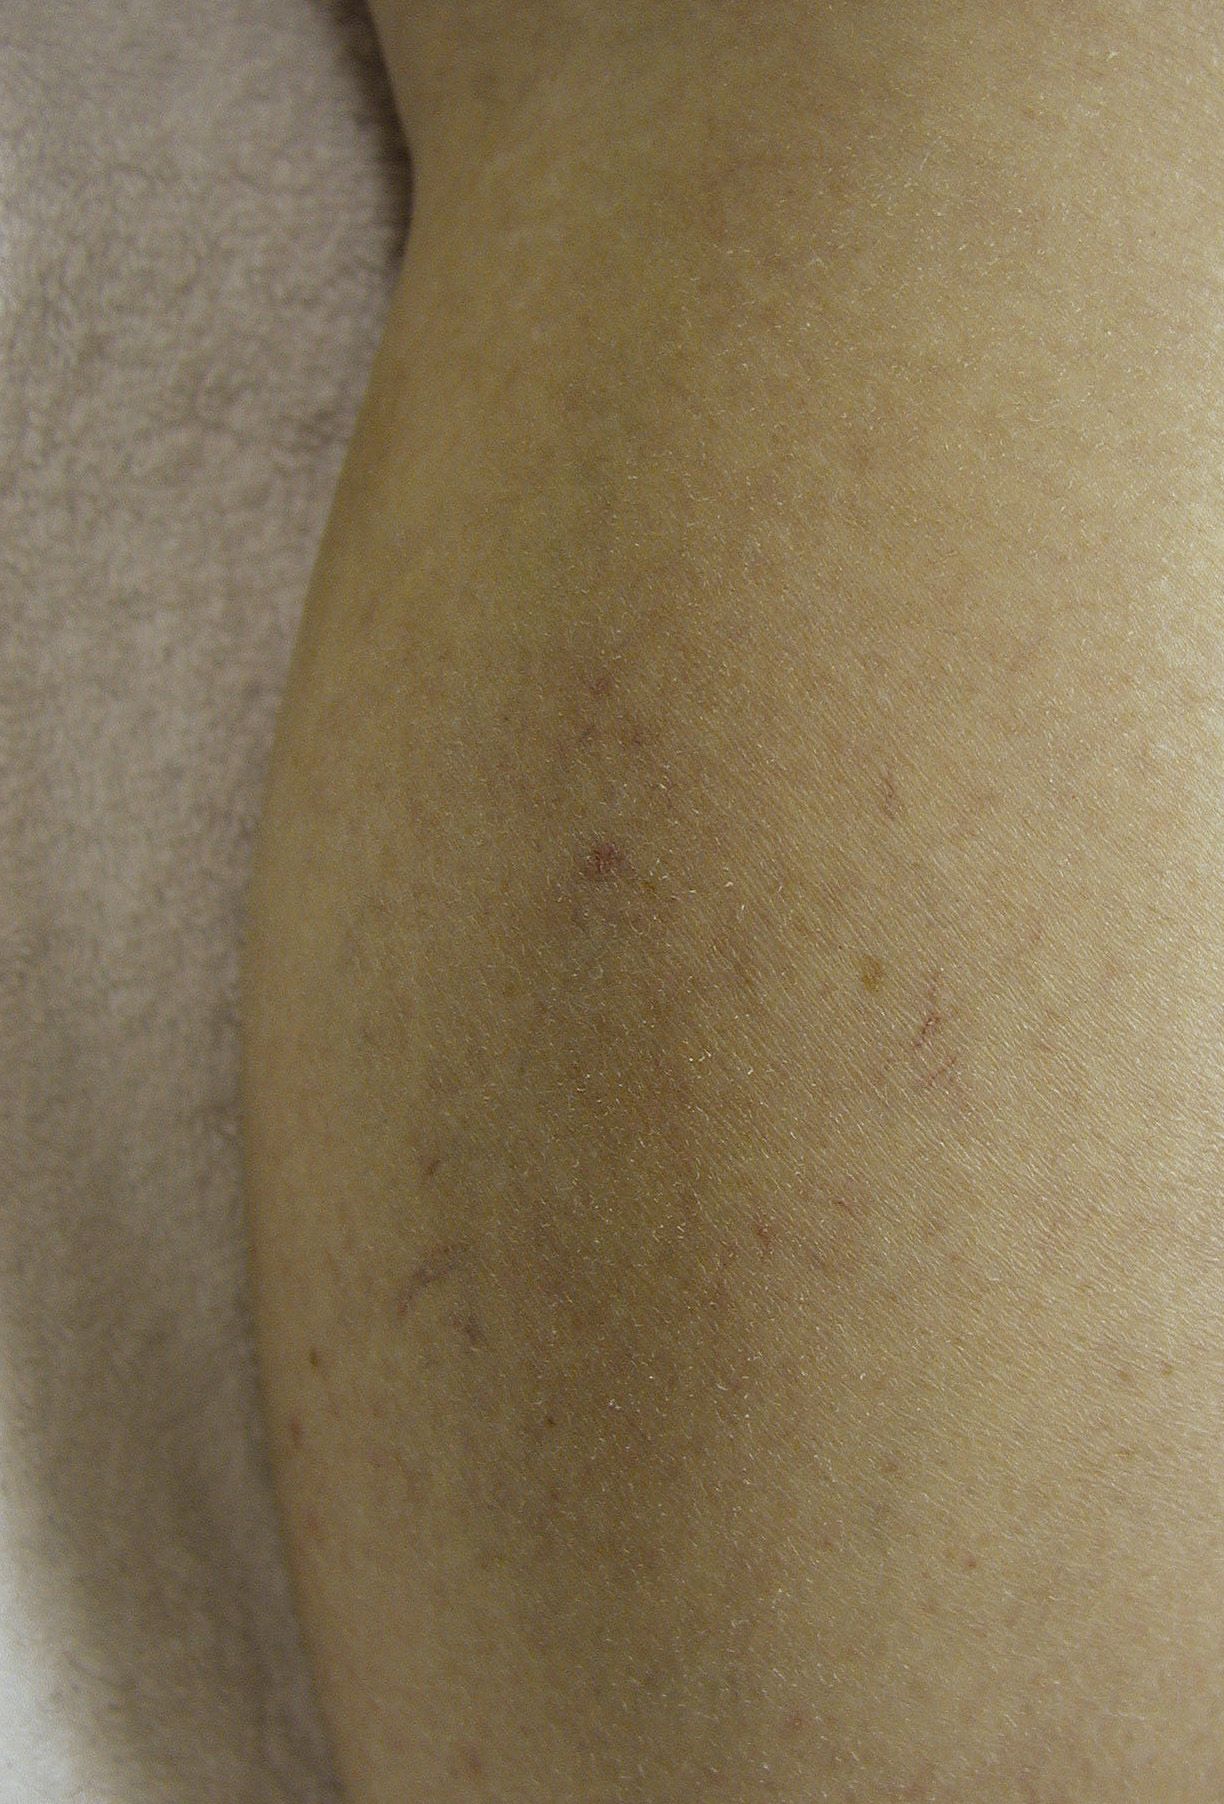 After  Thread Vein Removal